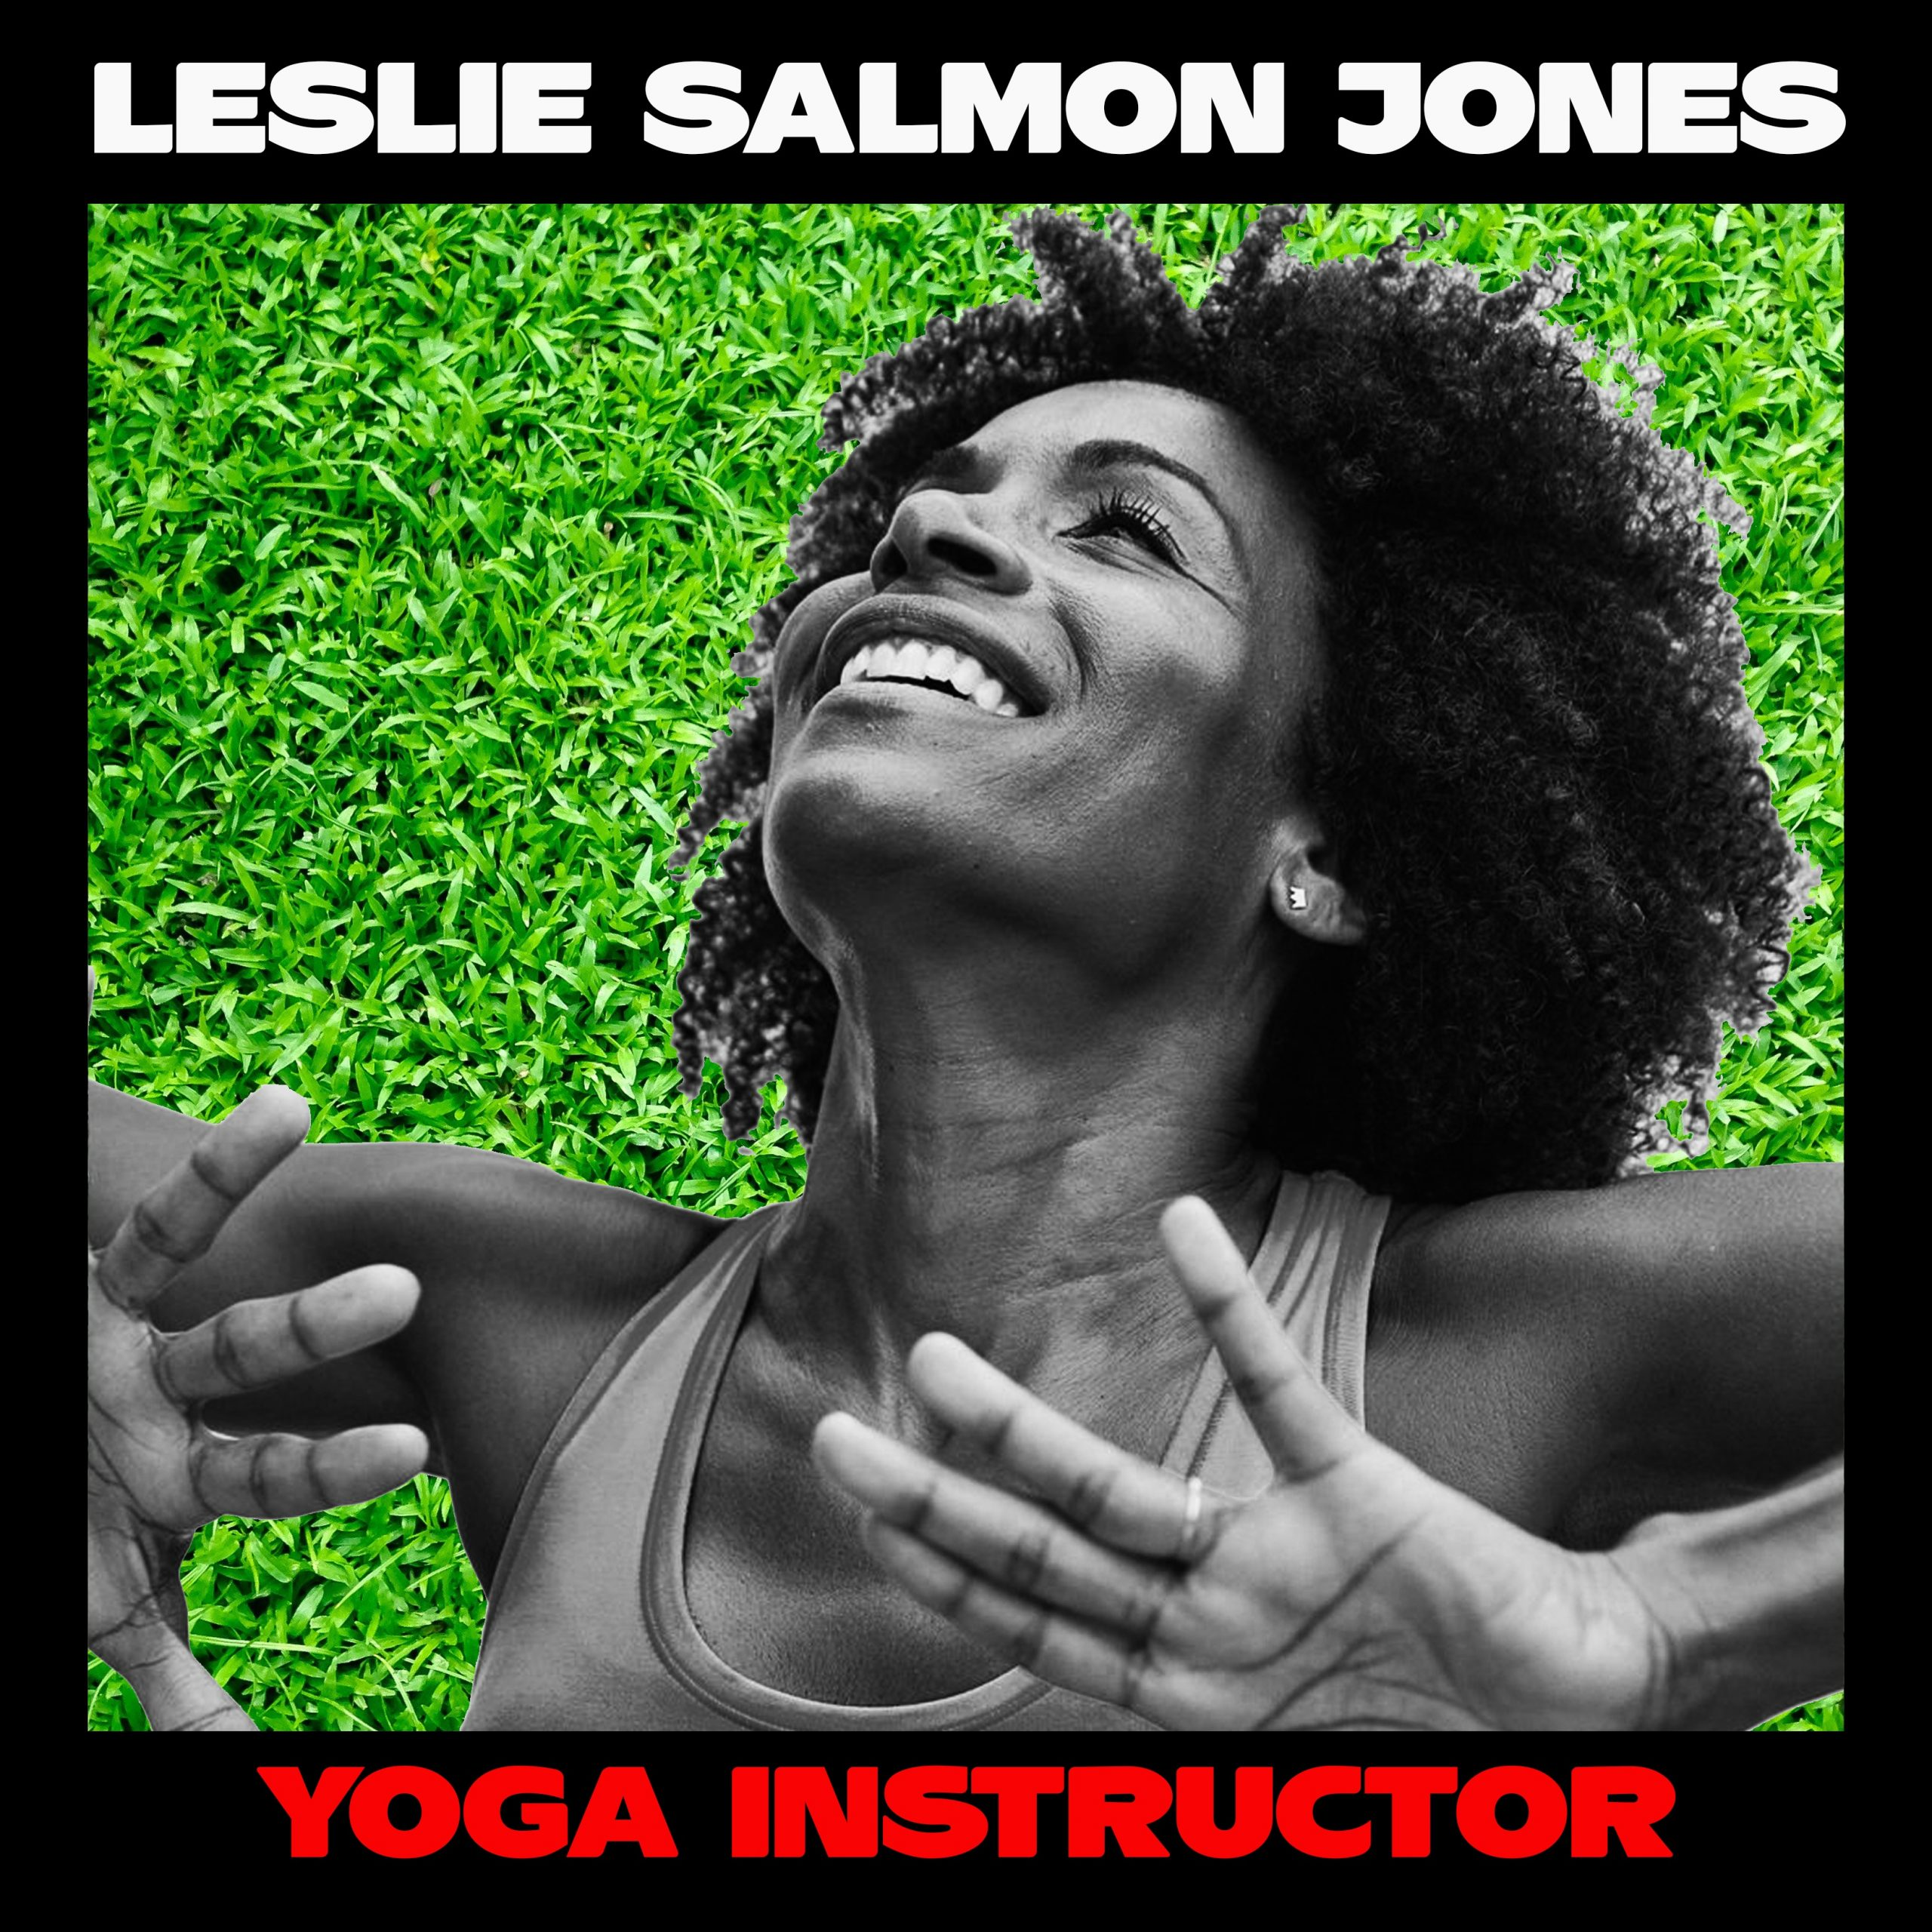 Leslie Salmon Jones, Yoga Instructor